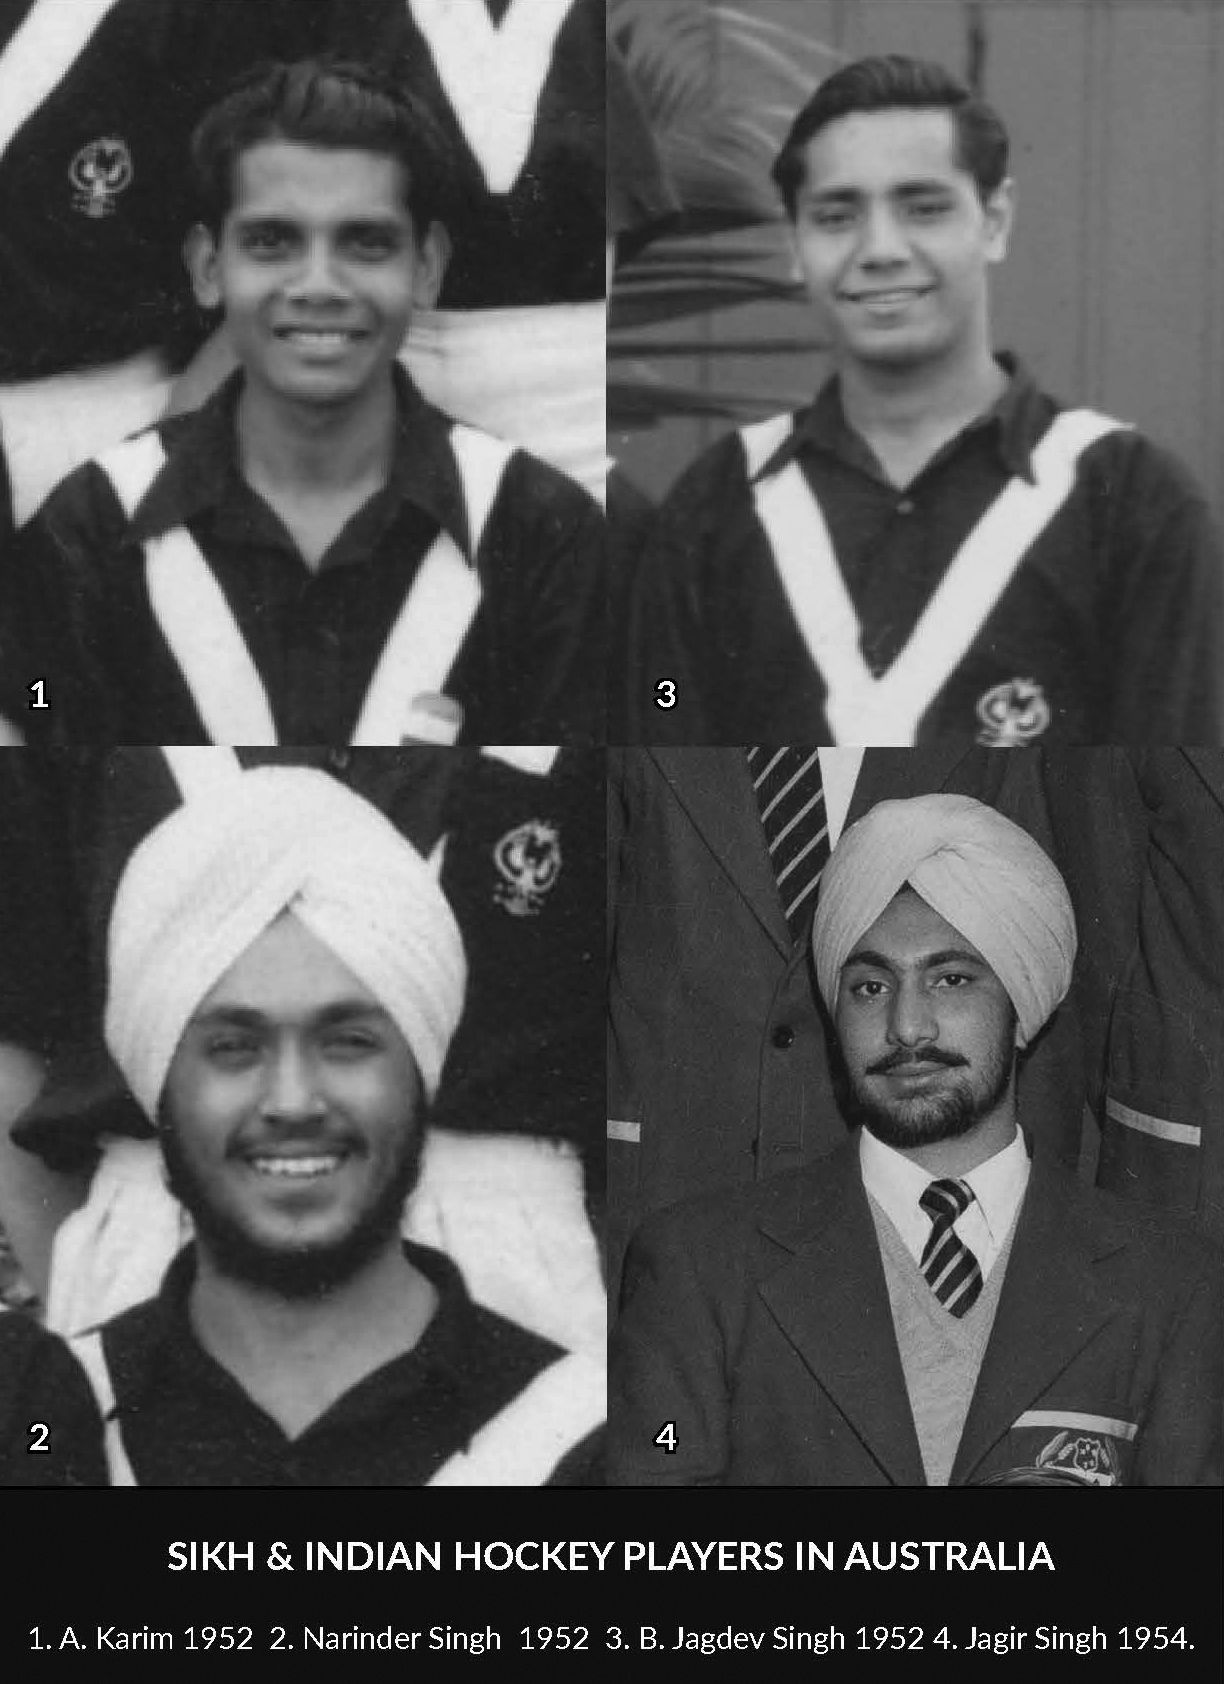 SIKH AND INDIAN AUSTRALIANS INTER-VARSITY HOCKEY